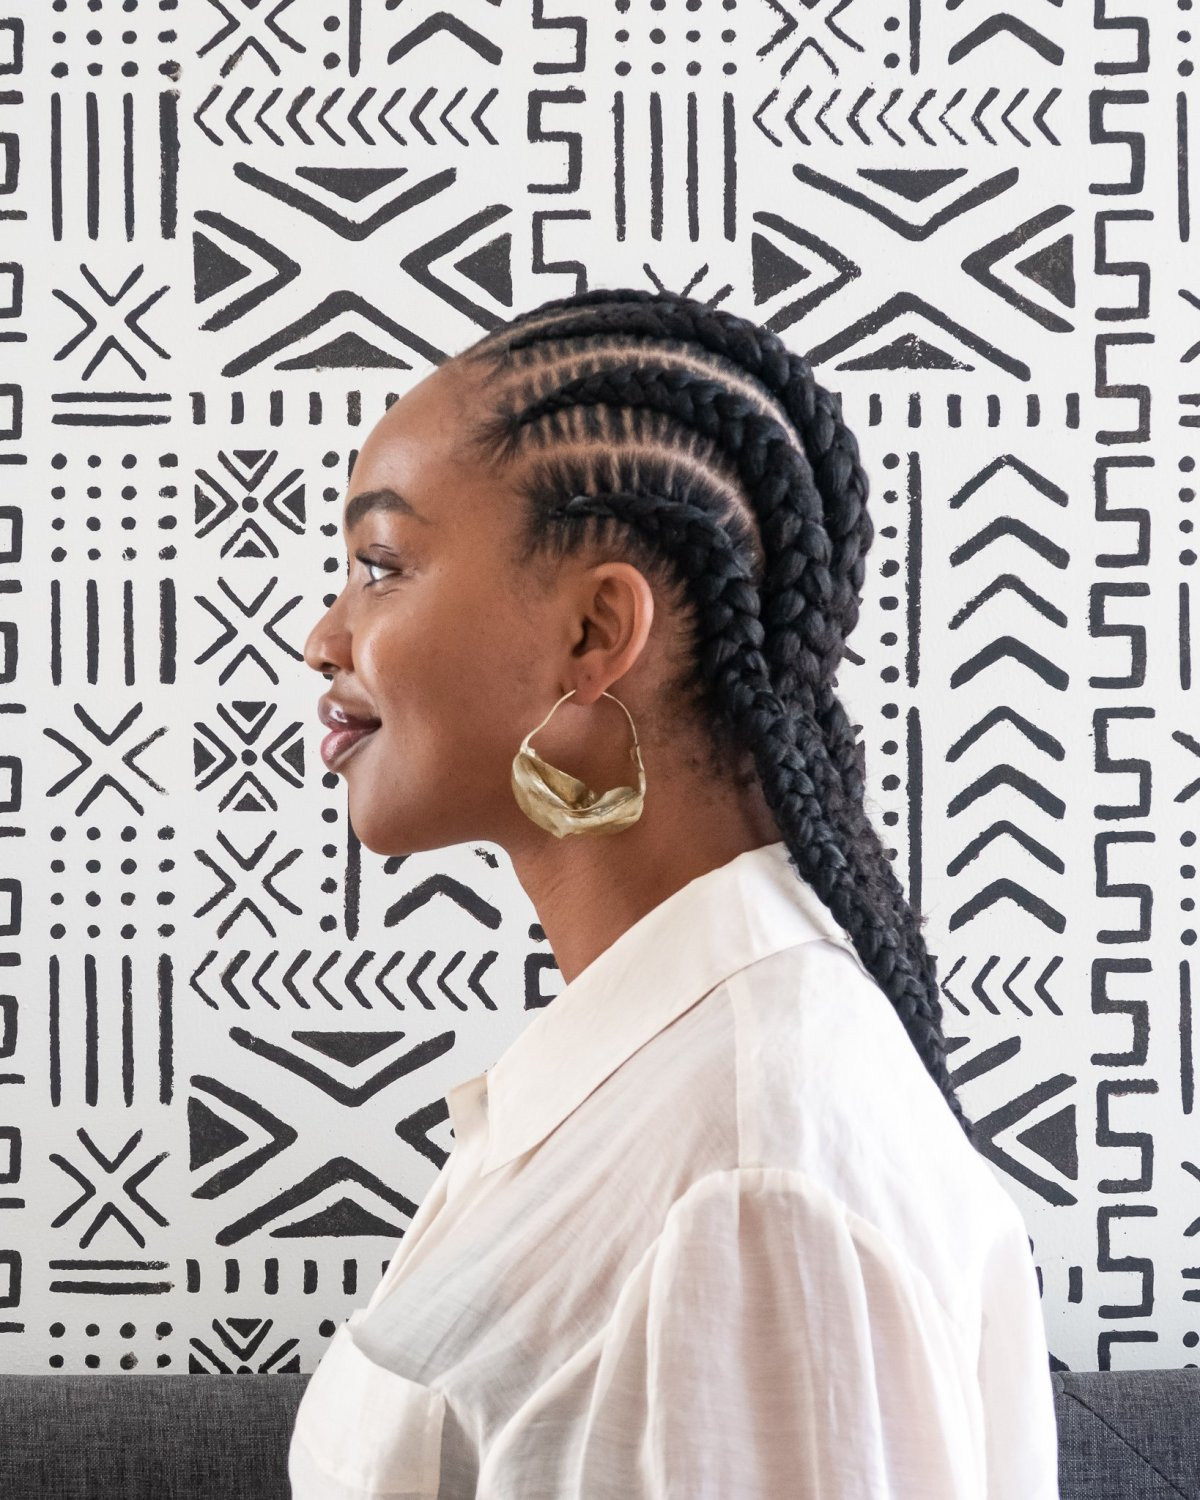 Ijeoma Kola Stitch Cornrows - protective styles for black woment